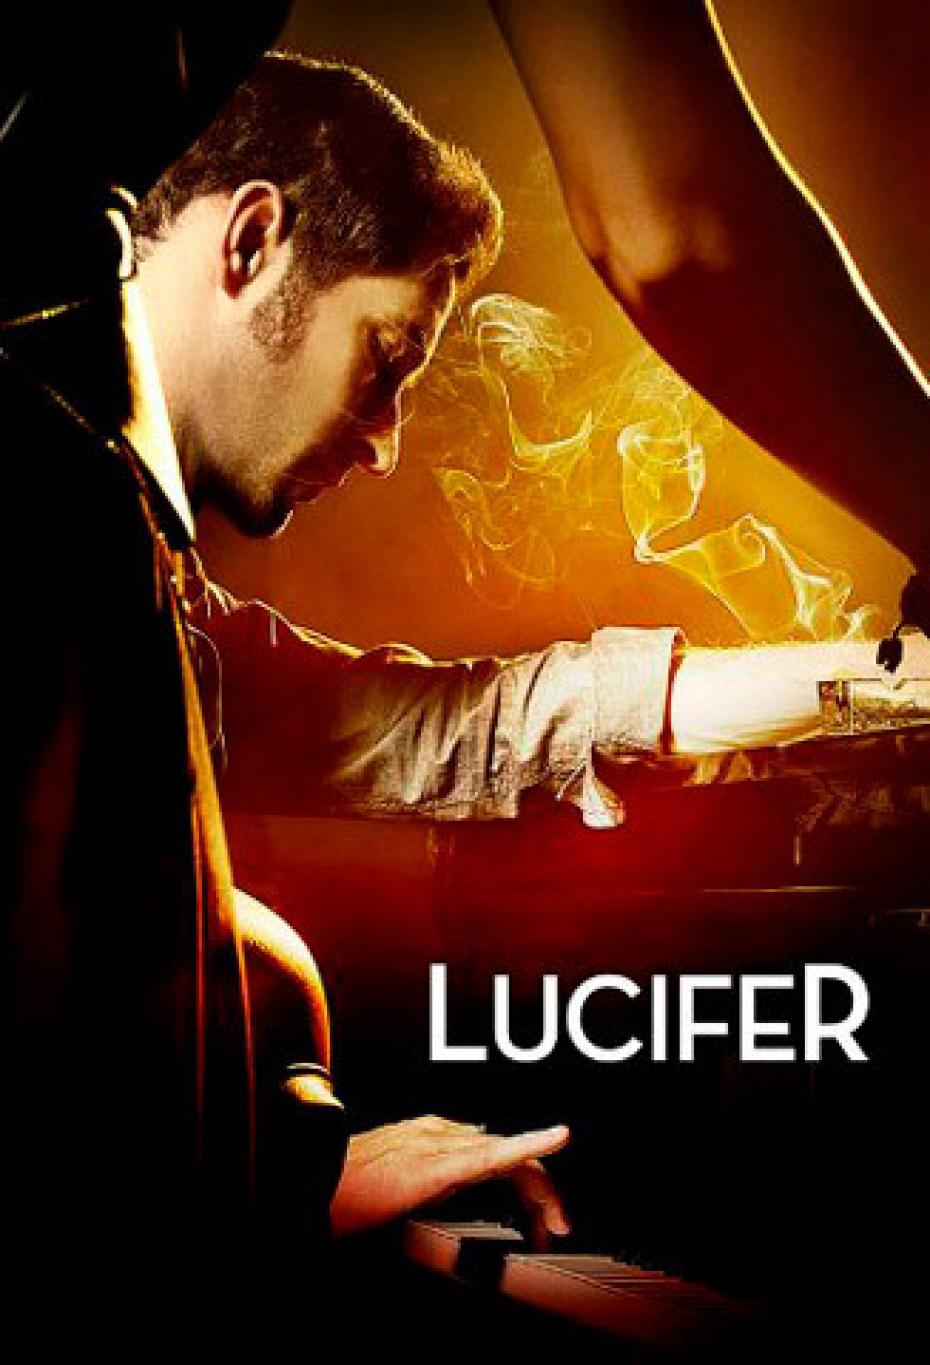 Assistir Lucifer 1 Temporada Dublado e Legendado